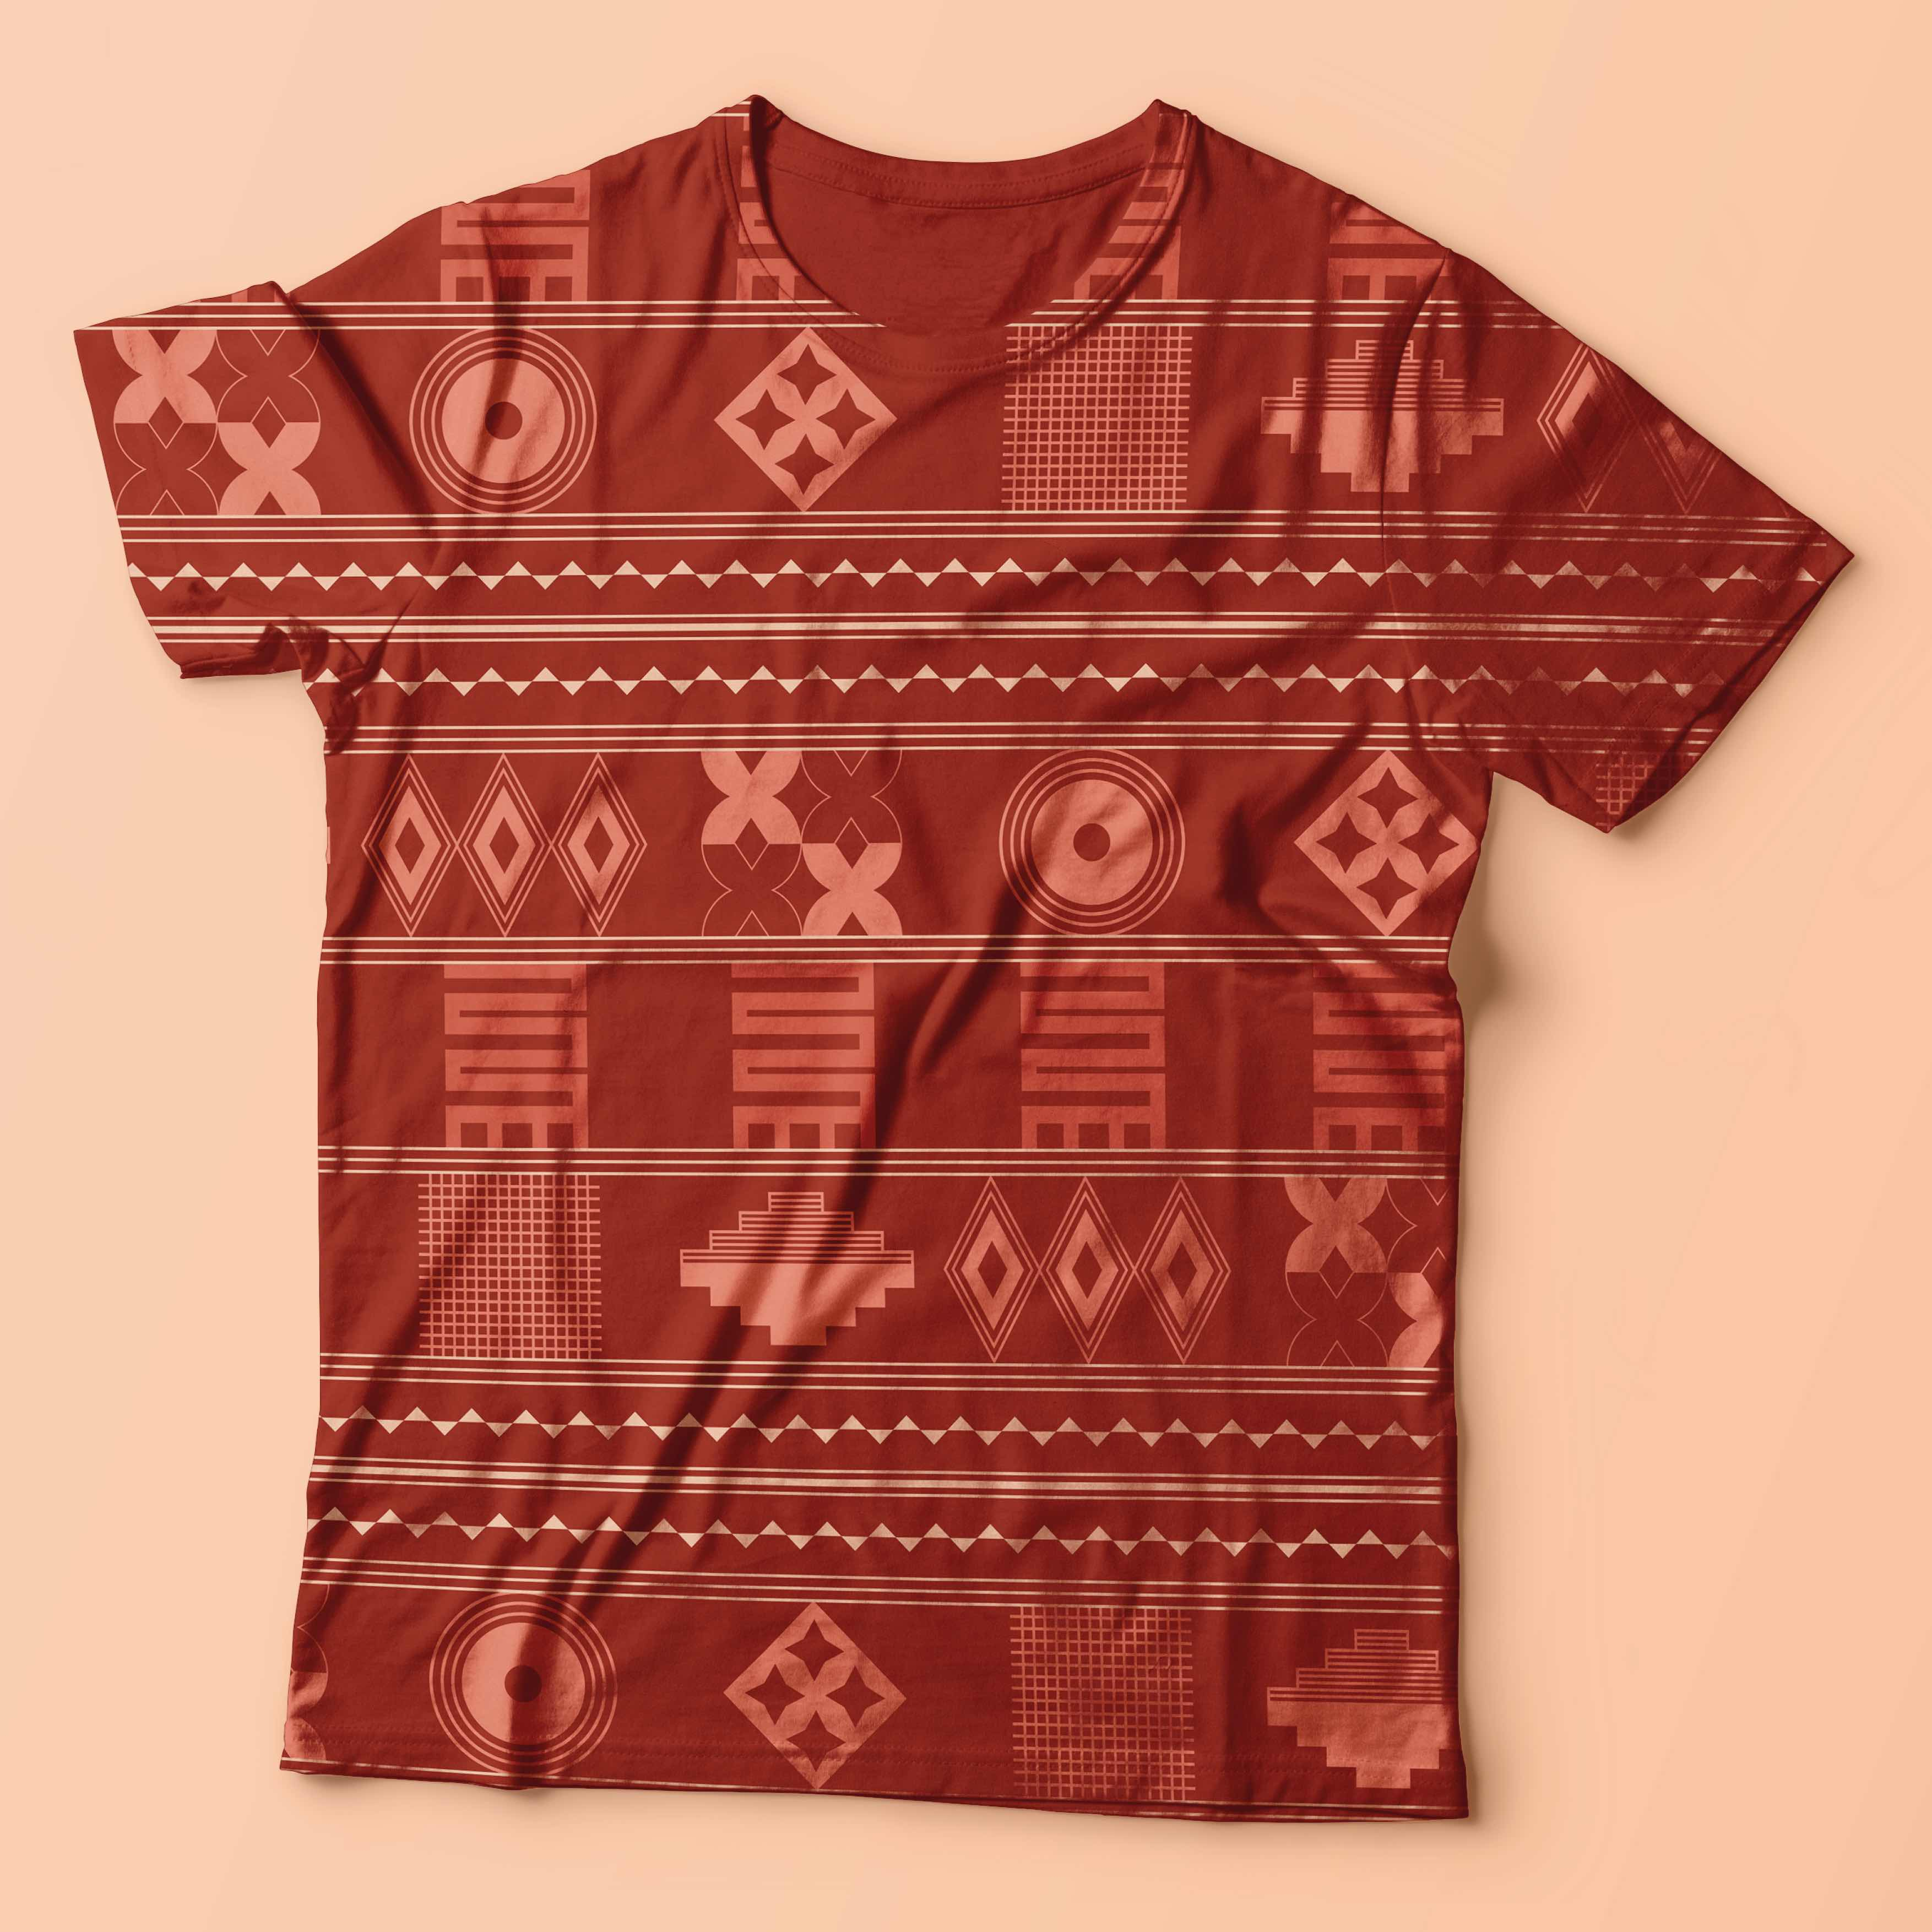 a patterned t-shirt